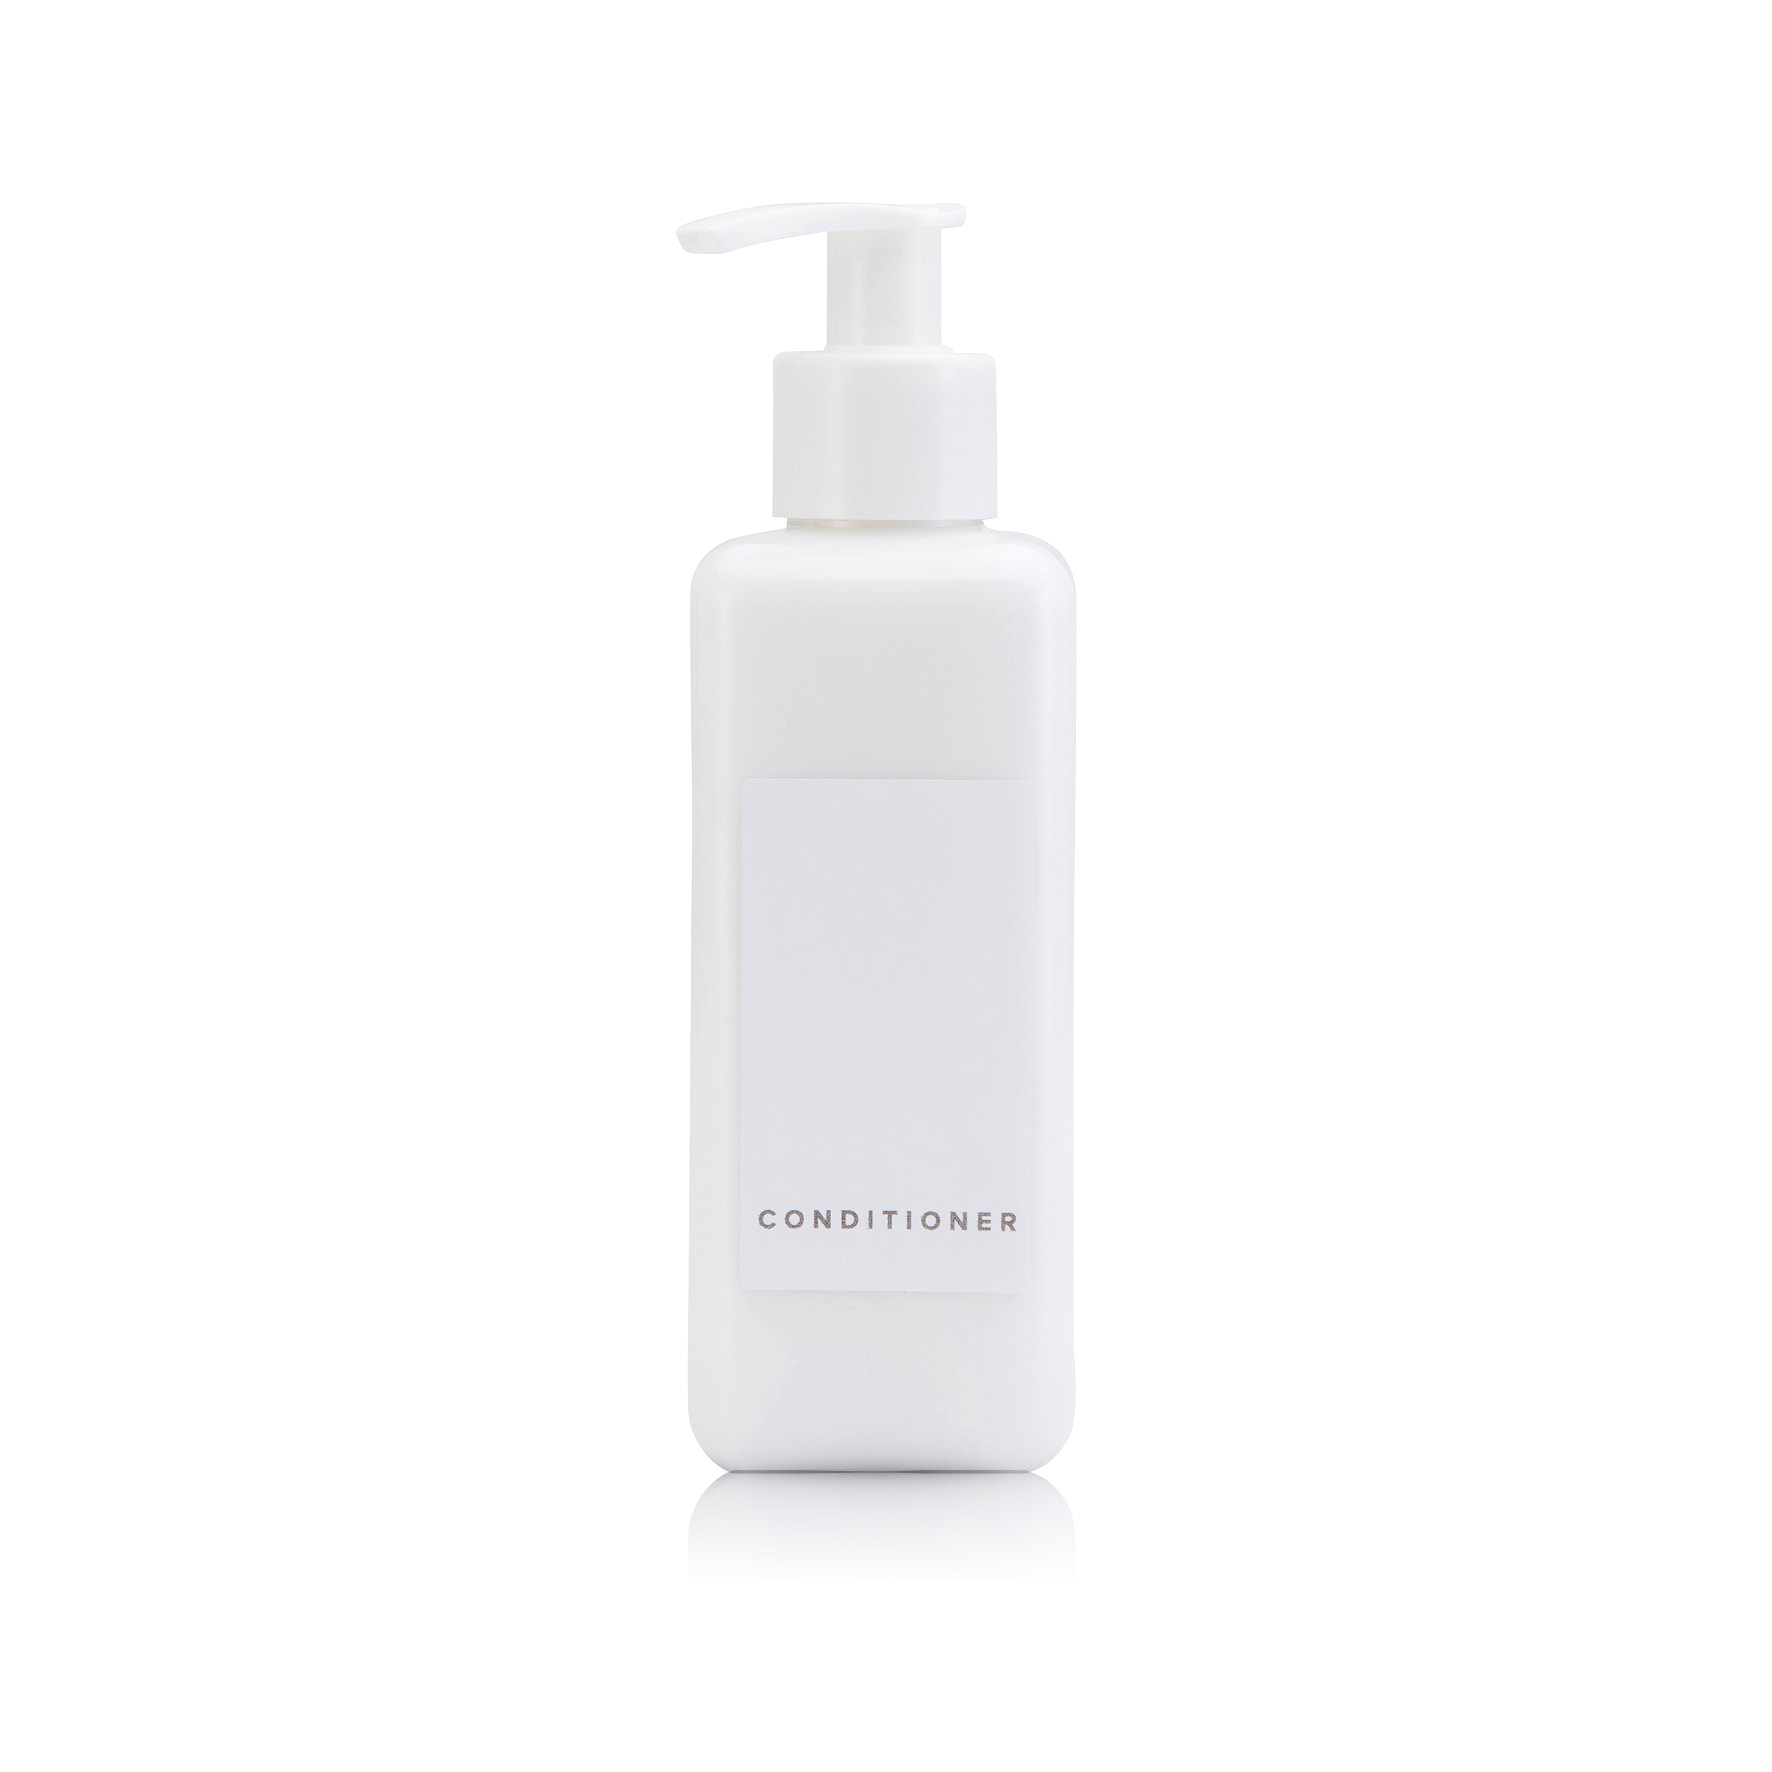 CONTEMP 200 CONDITIONER